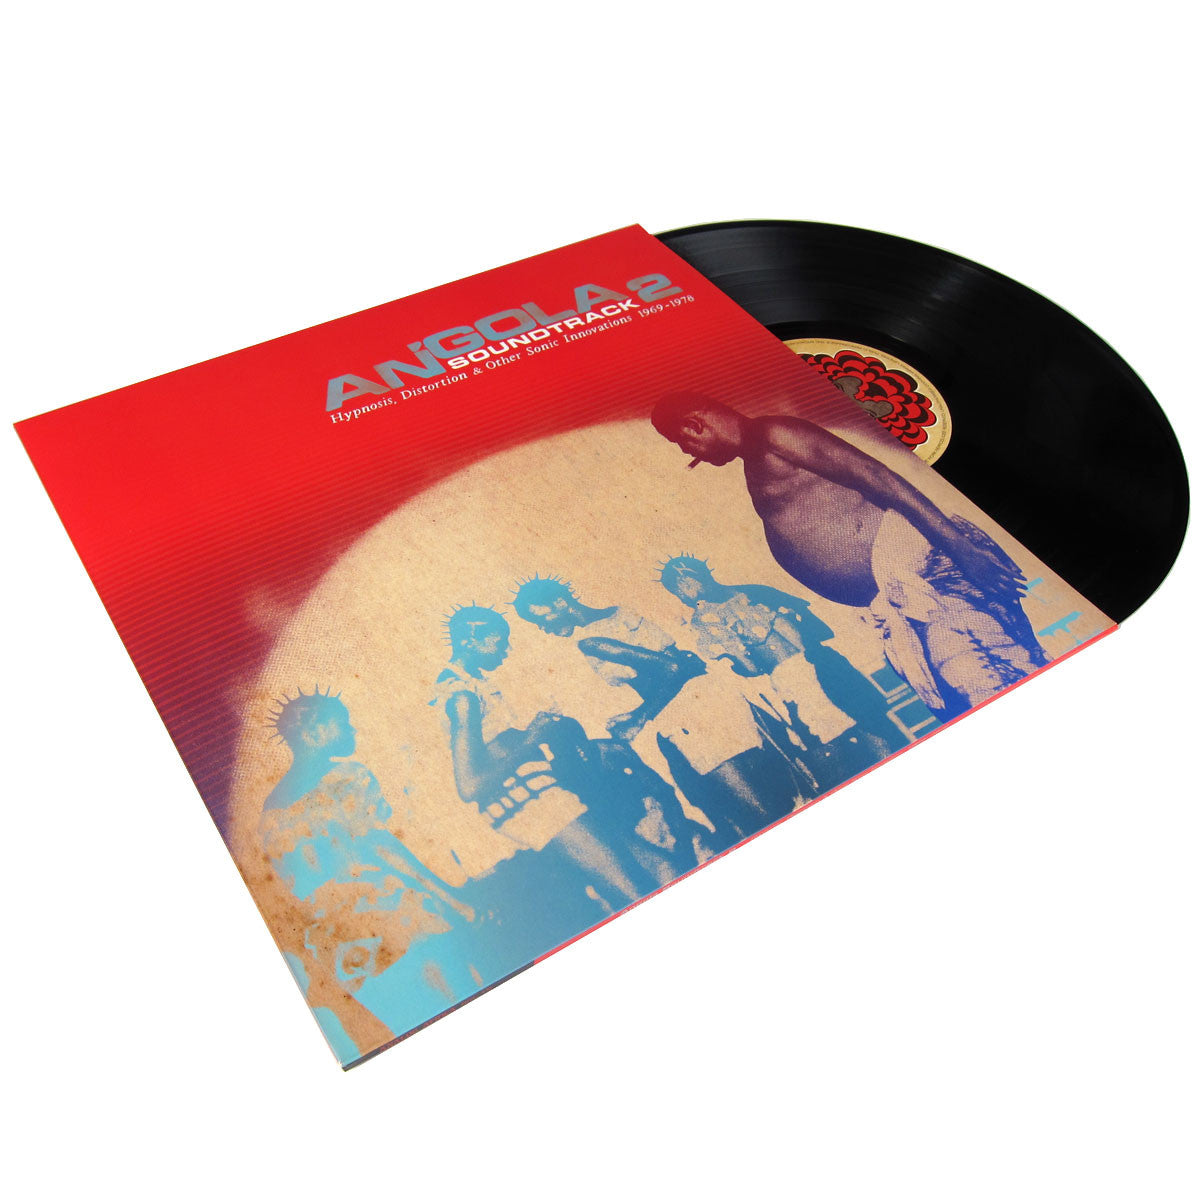 Analog Africa: Angola 2 Soundtrack Hypnosis, Distortion & Other Sonic Innovations 1969-1978 2LP